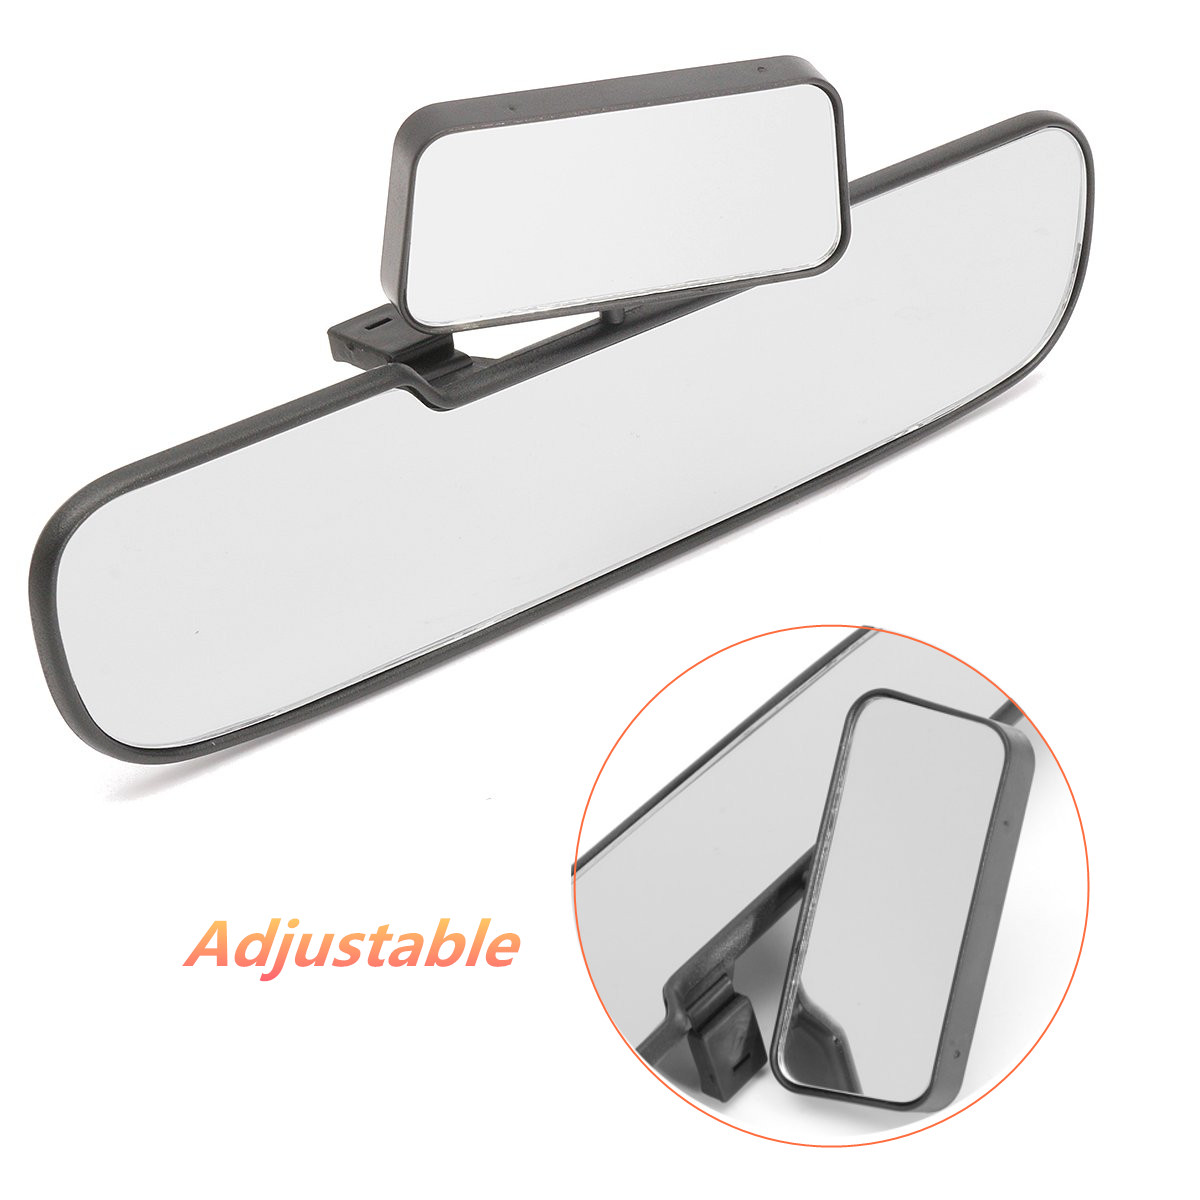 Rear-View-Mirror Curved Wide-Angle Universal Large-Vision Panoramic Car Anti-Dazzling